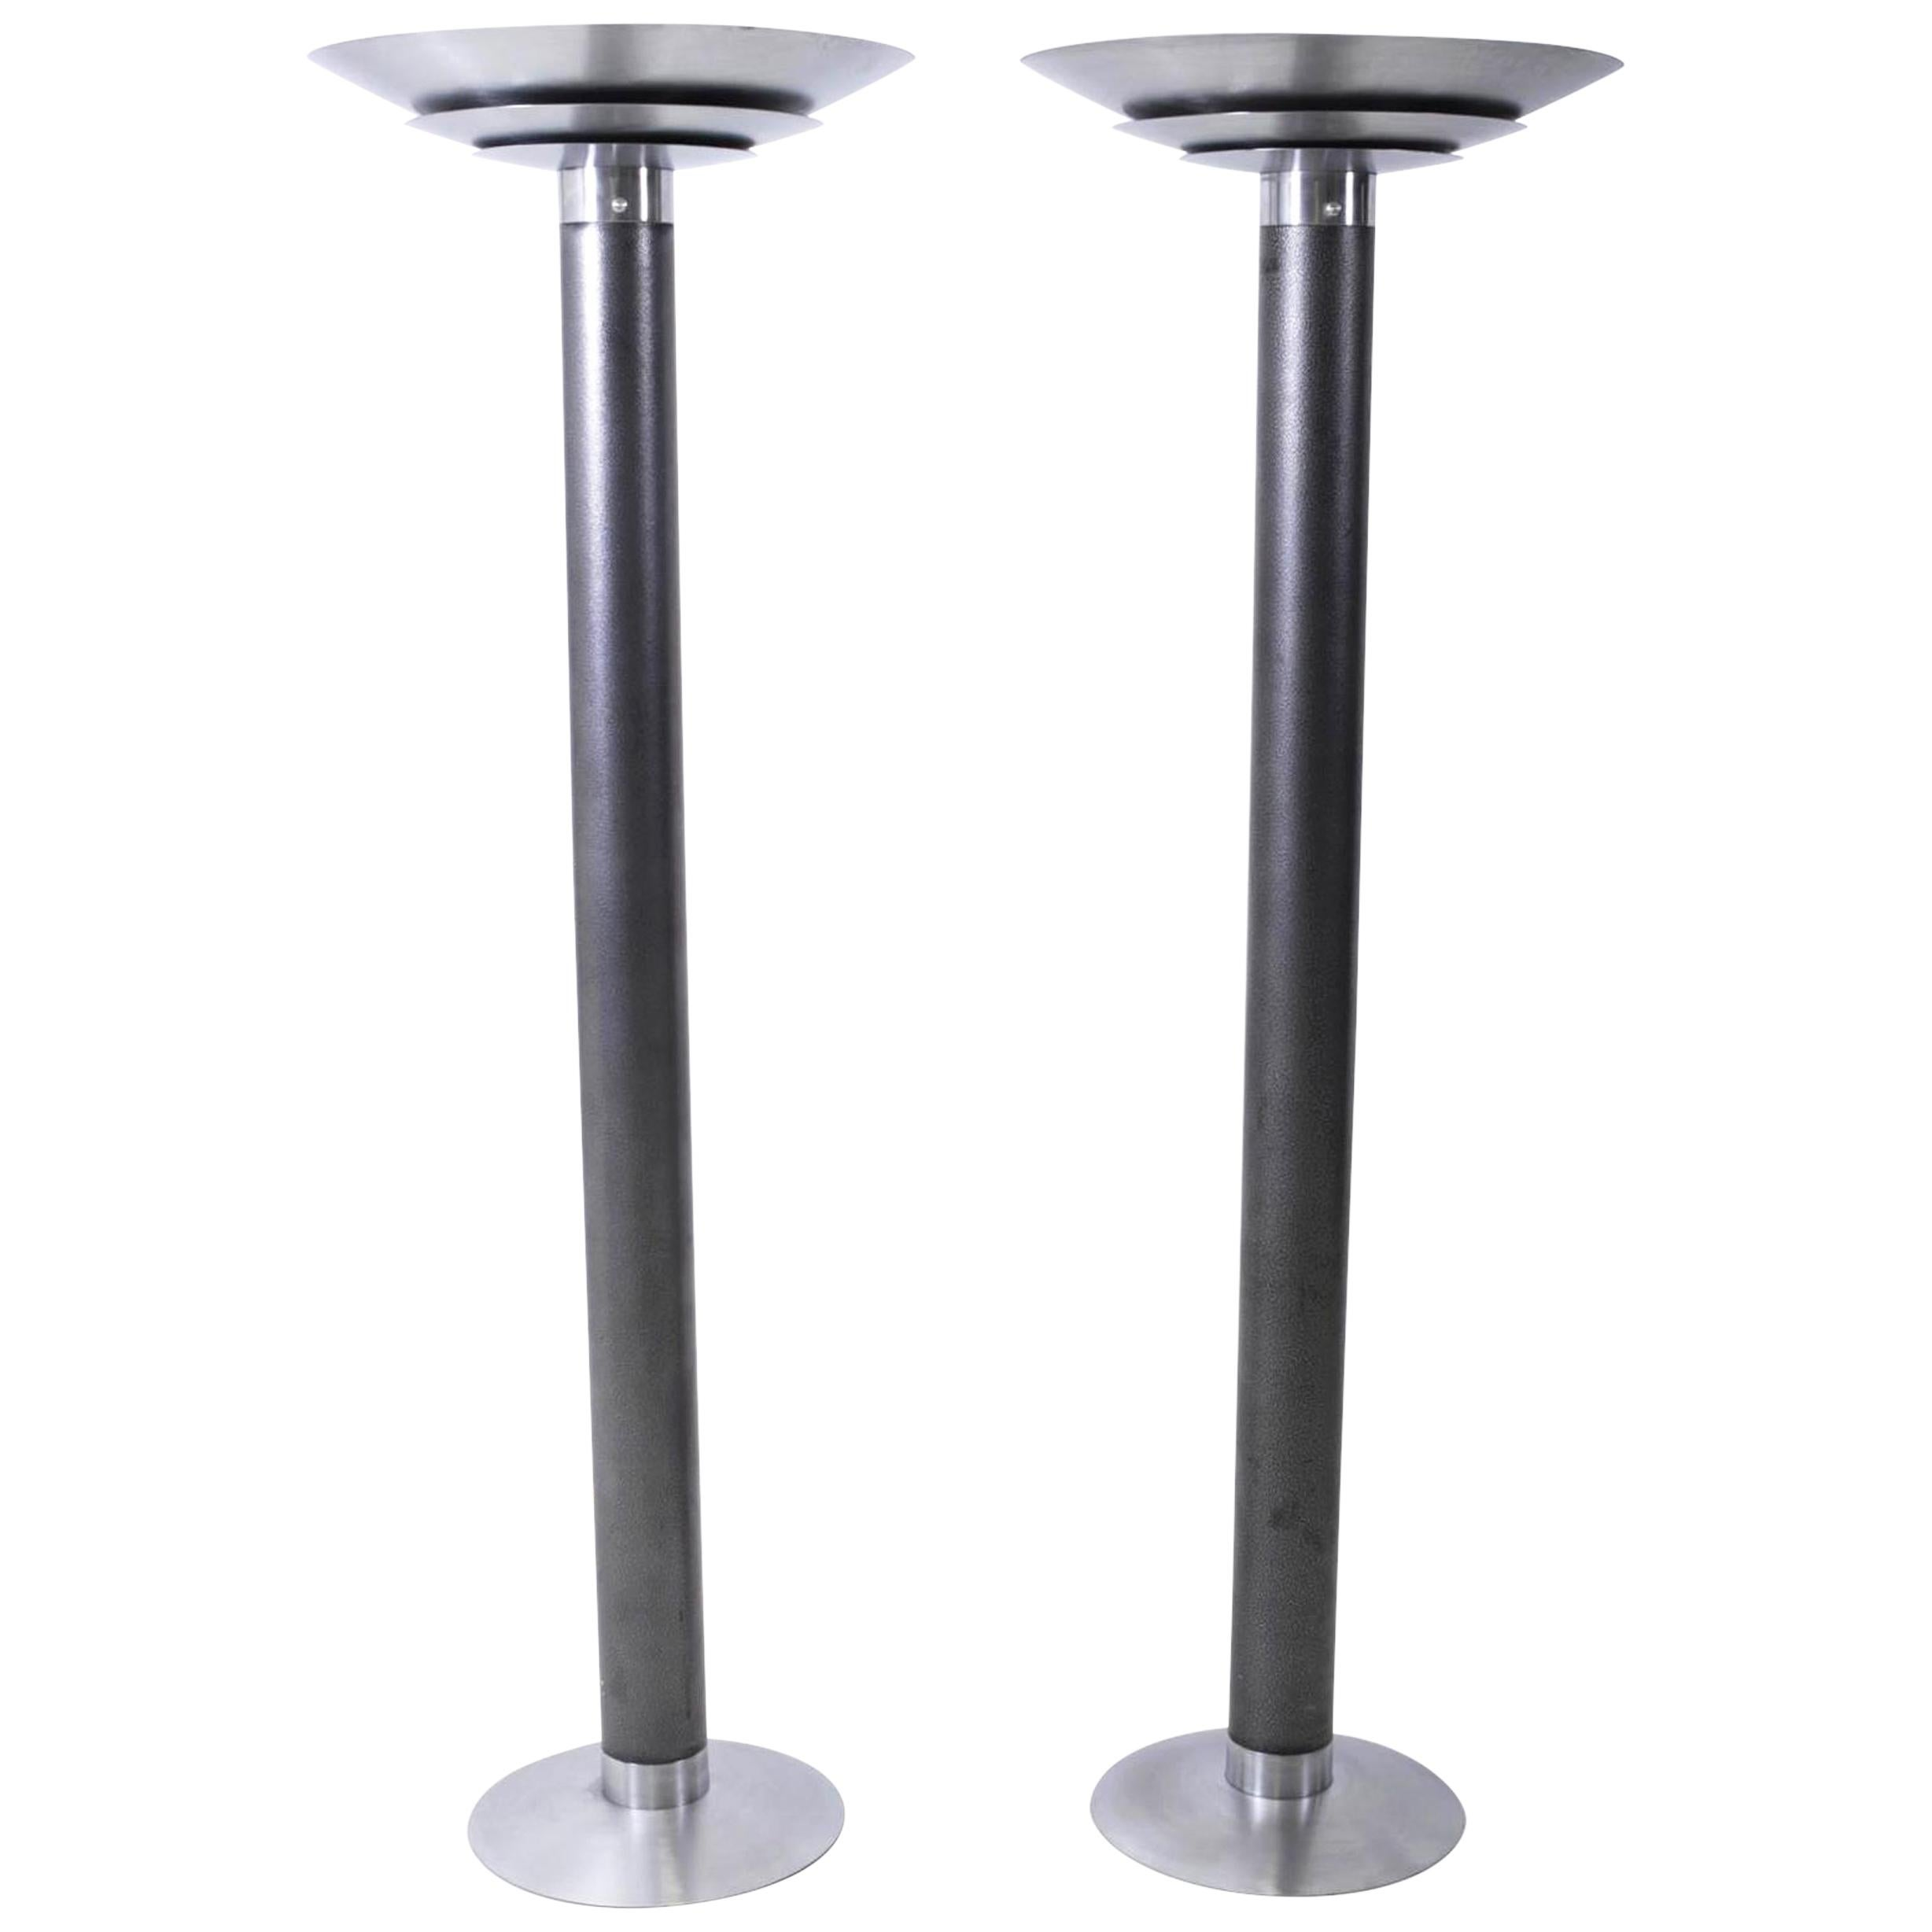 1970s Stainless Steel Oversized Torchiere Floor Lamps